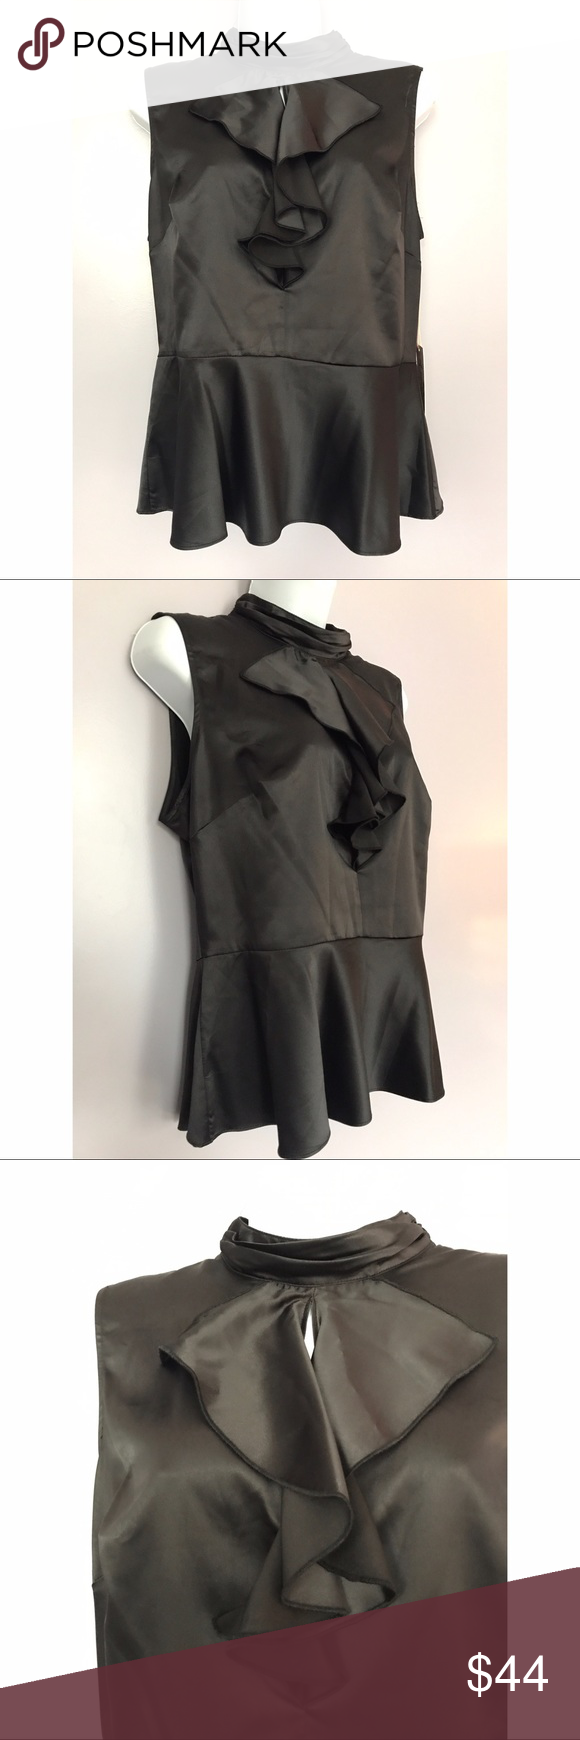 {Nanette Nanette Lepore} Silk-Like Peplum Top Sleek peplum top from Nanette Nanette Lepore. Ruffle detail, layered neck.        Location: B3 Nanette Lepore Tops